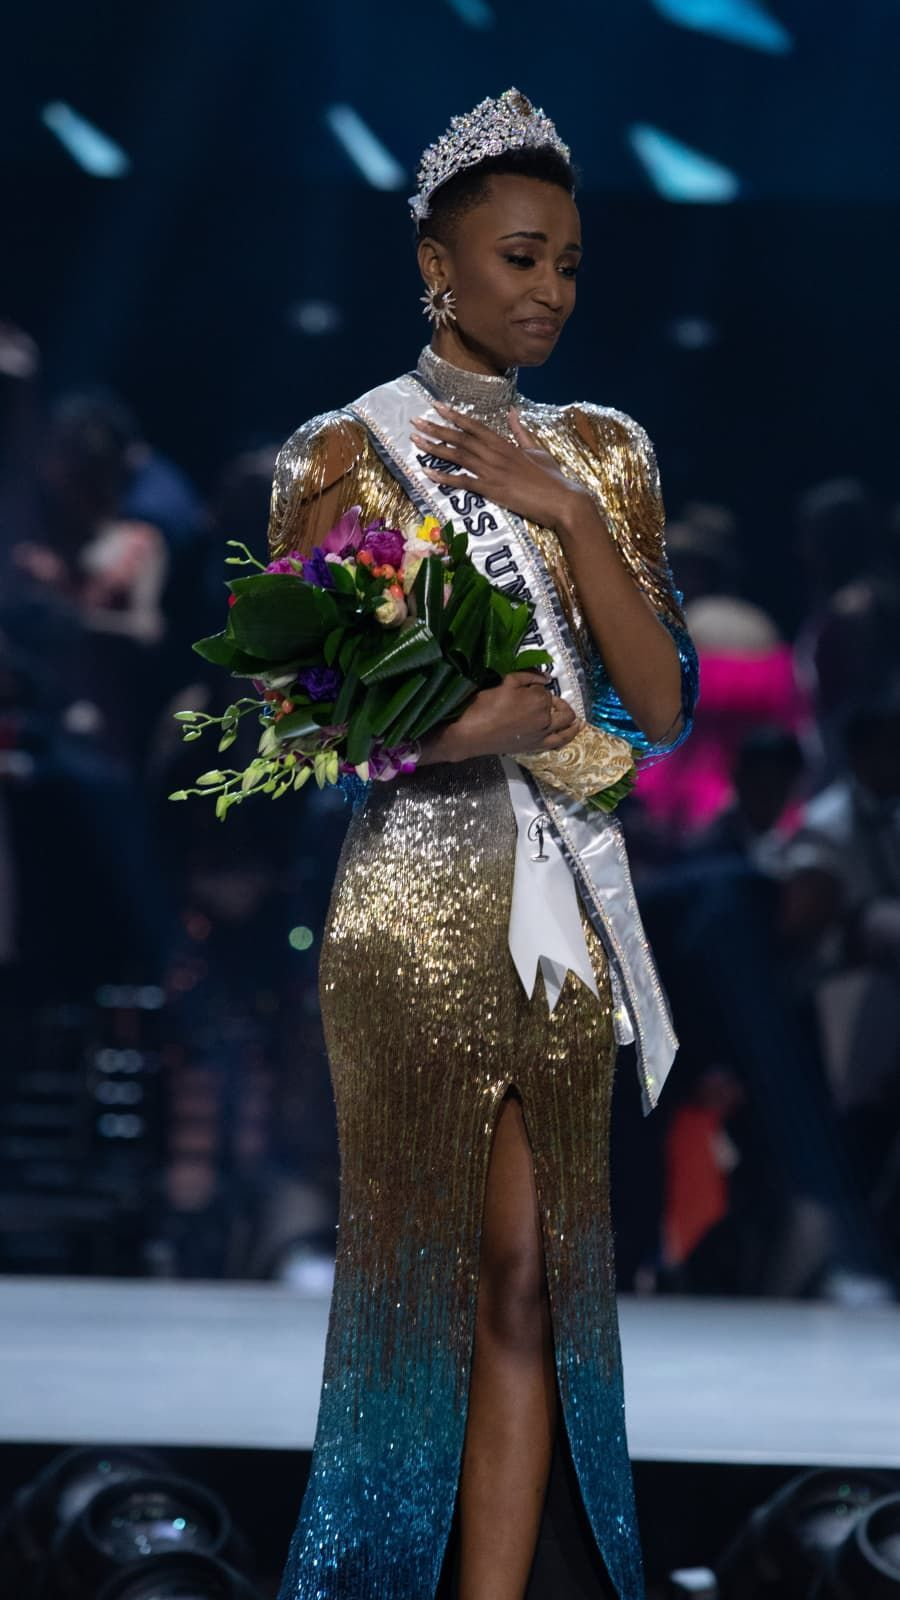 Zozibini Tunzi Miss South Africa 2019 Is Crowned Miss Universe 2019 In Atlanta Georgia In 2020 Pageant Life Pageant Celebrities Female